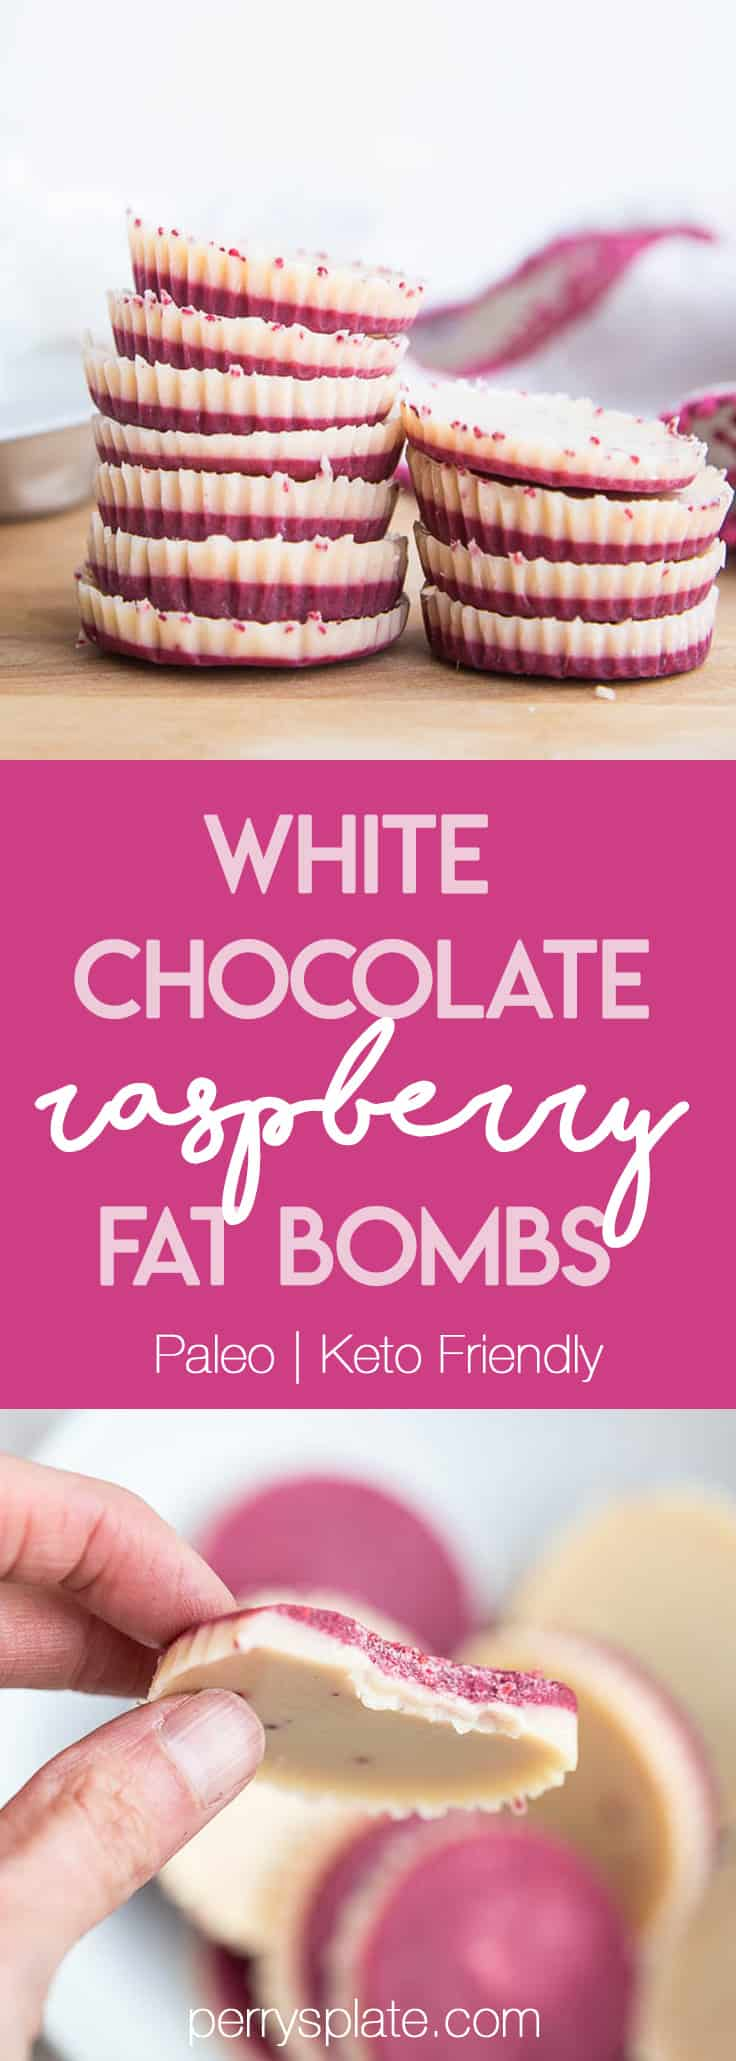 These keto friendly, sugar free fat bombs are the BEST little treat! The raspberry flavor is so strong and together they taste like a white chocolate raspberry truffle. Totally delicious.